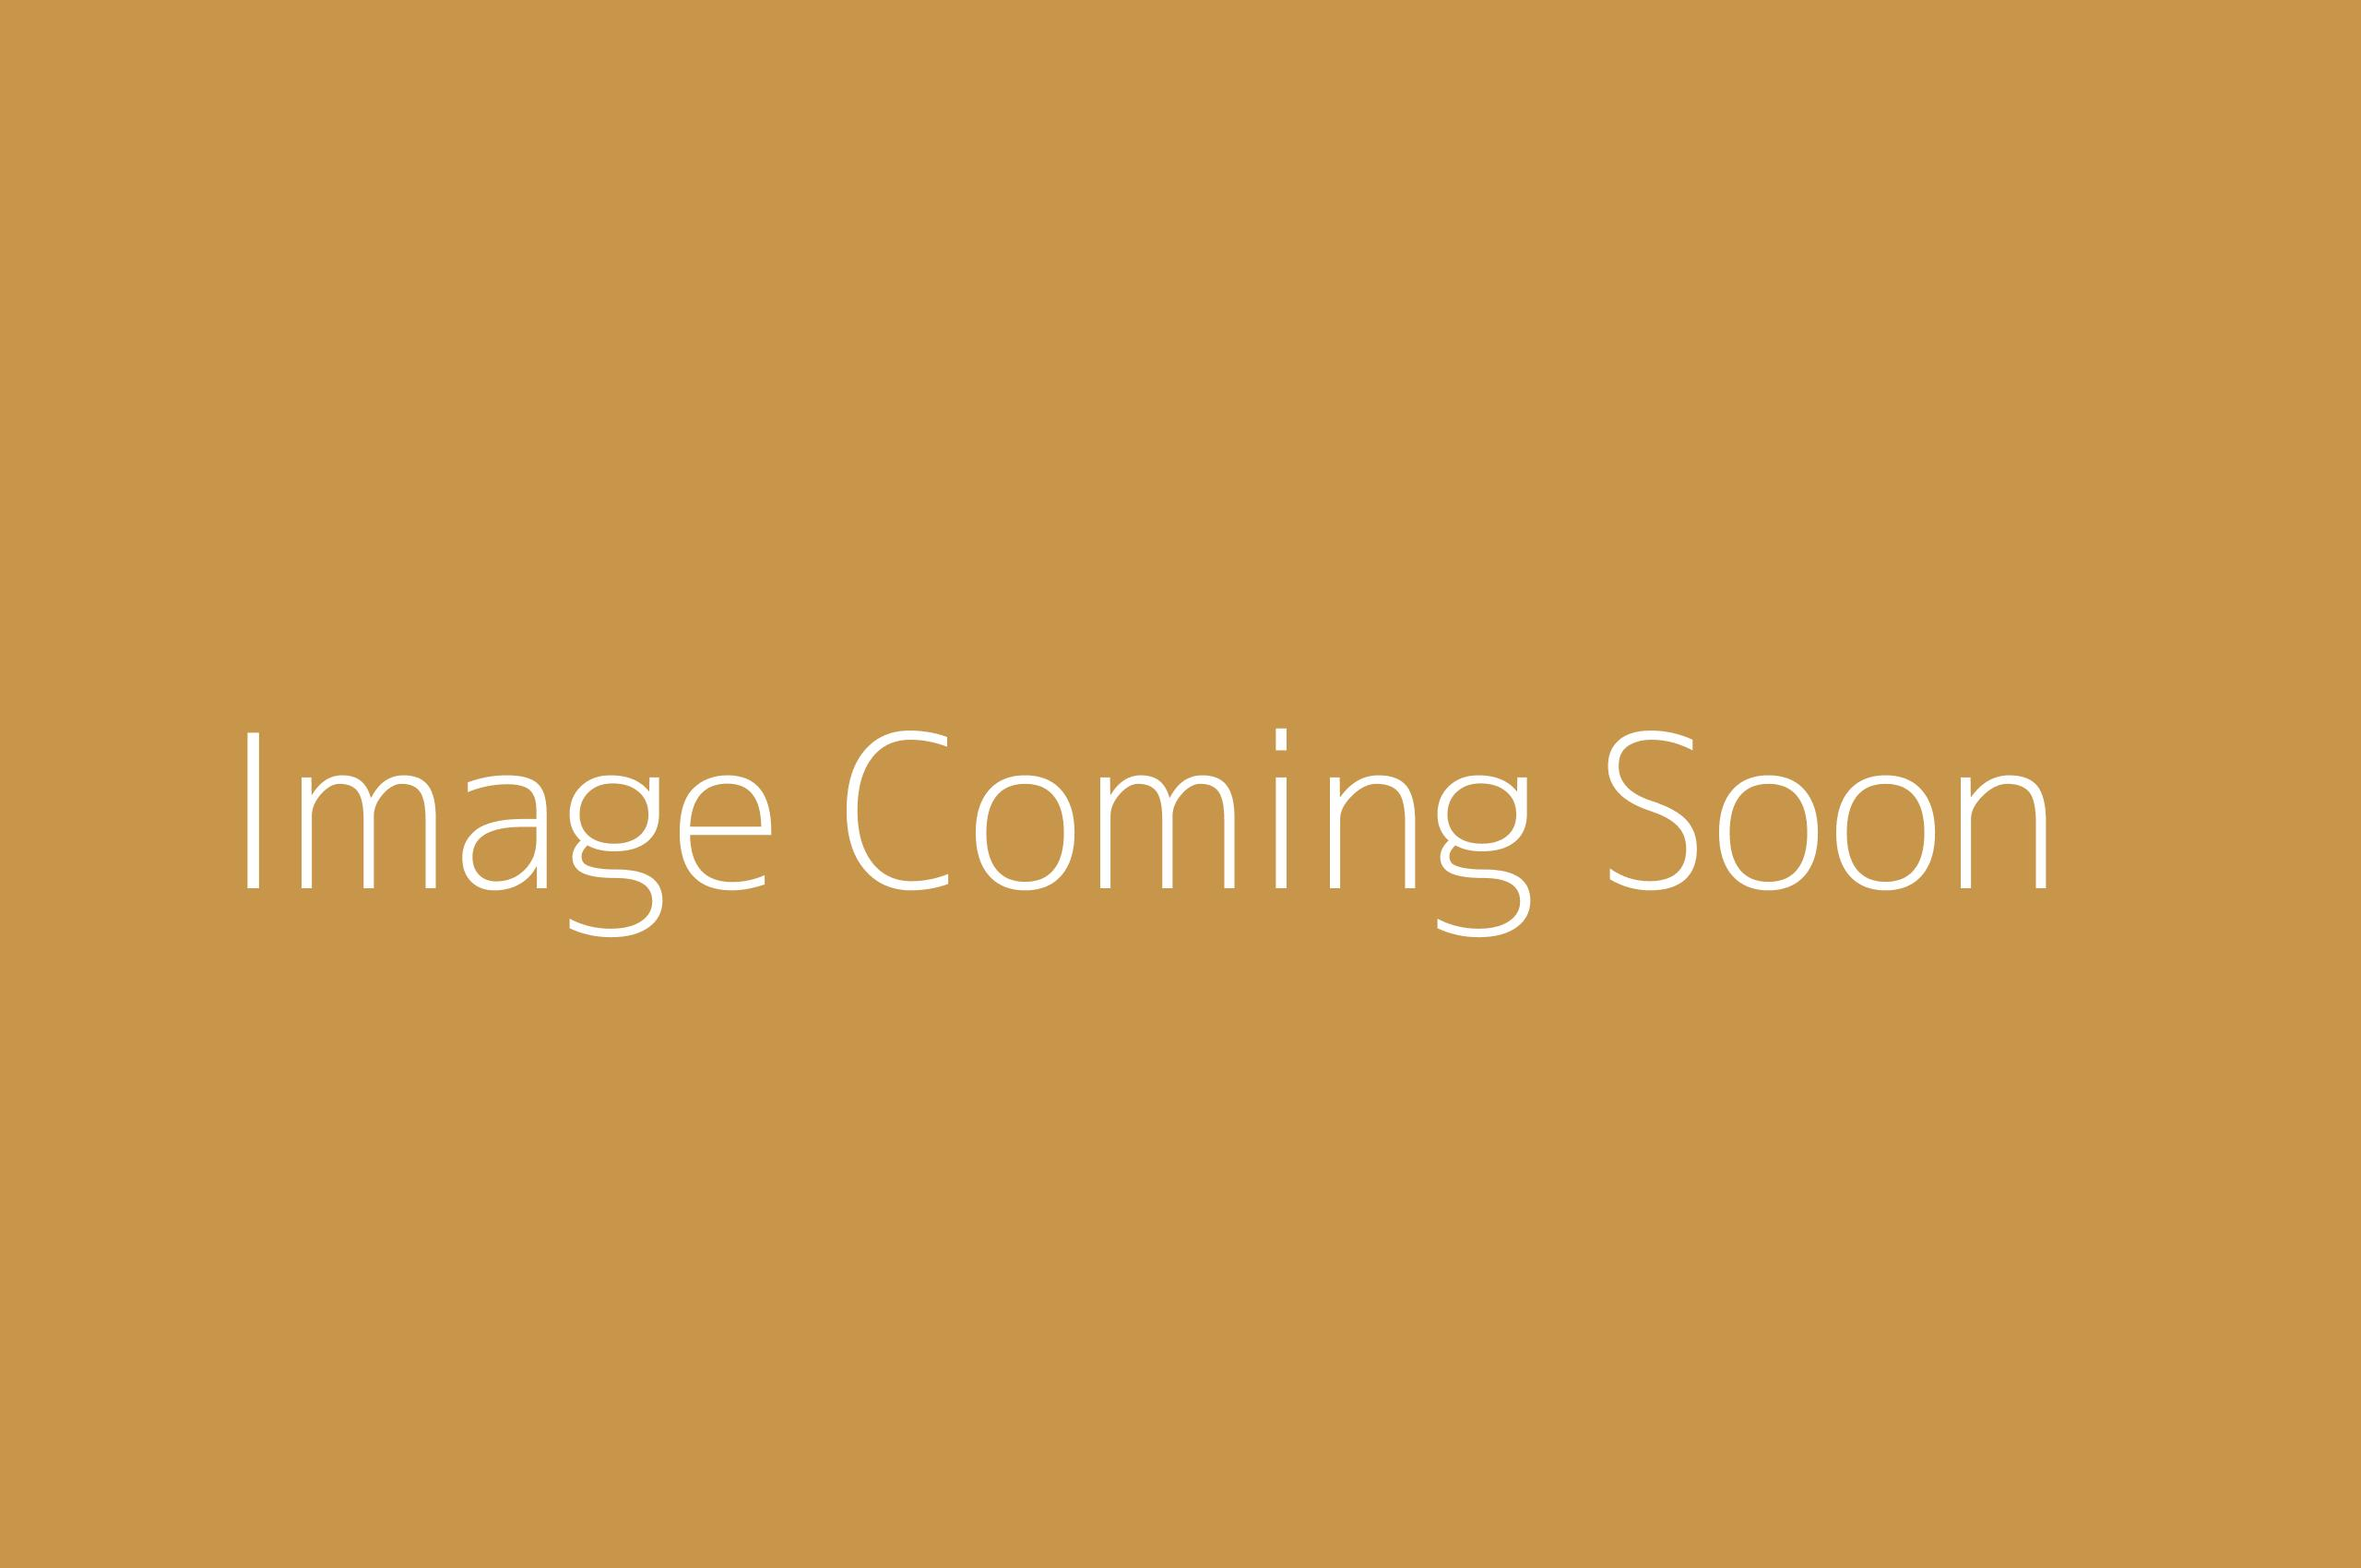 Default page for pg.php * PLEAES CHANGE THIS TITLE * Image Coming Soon